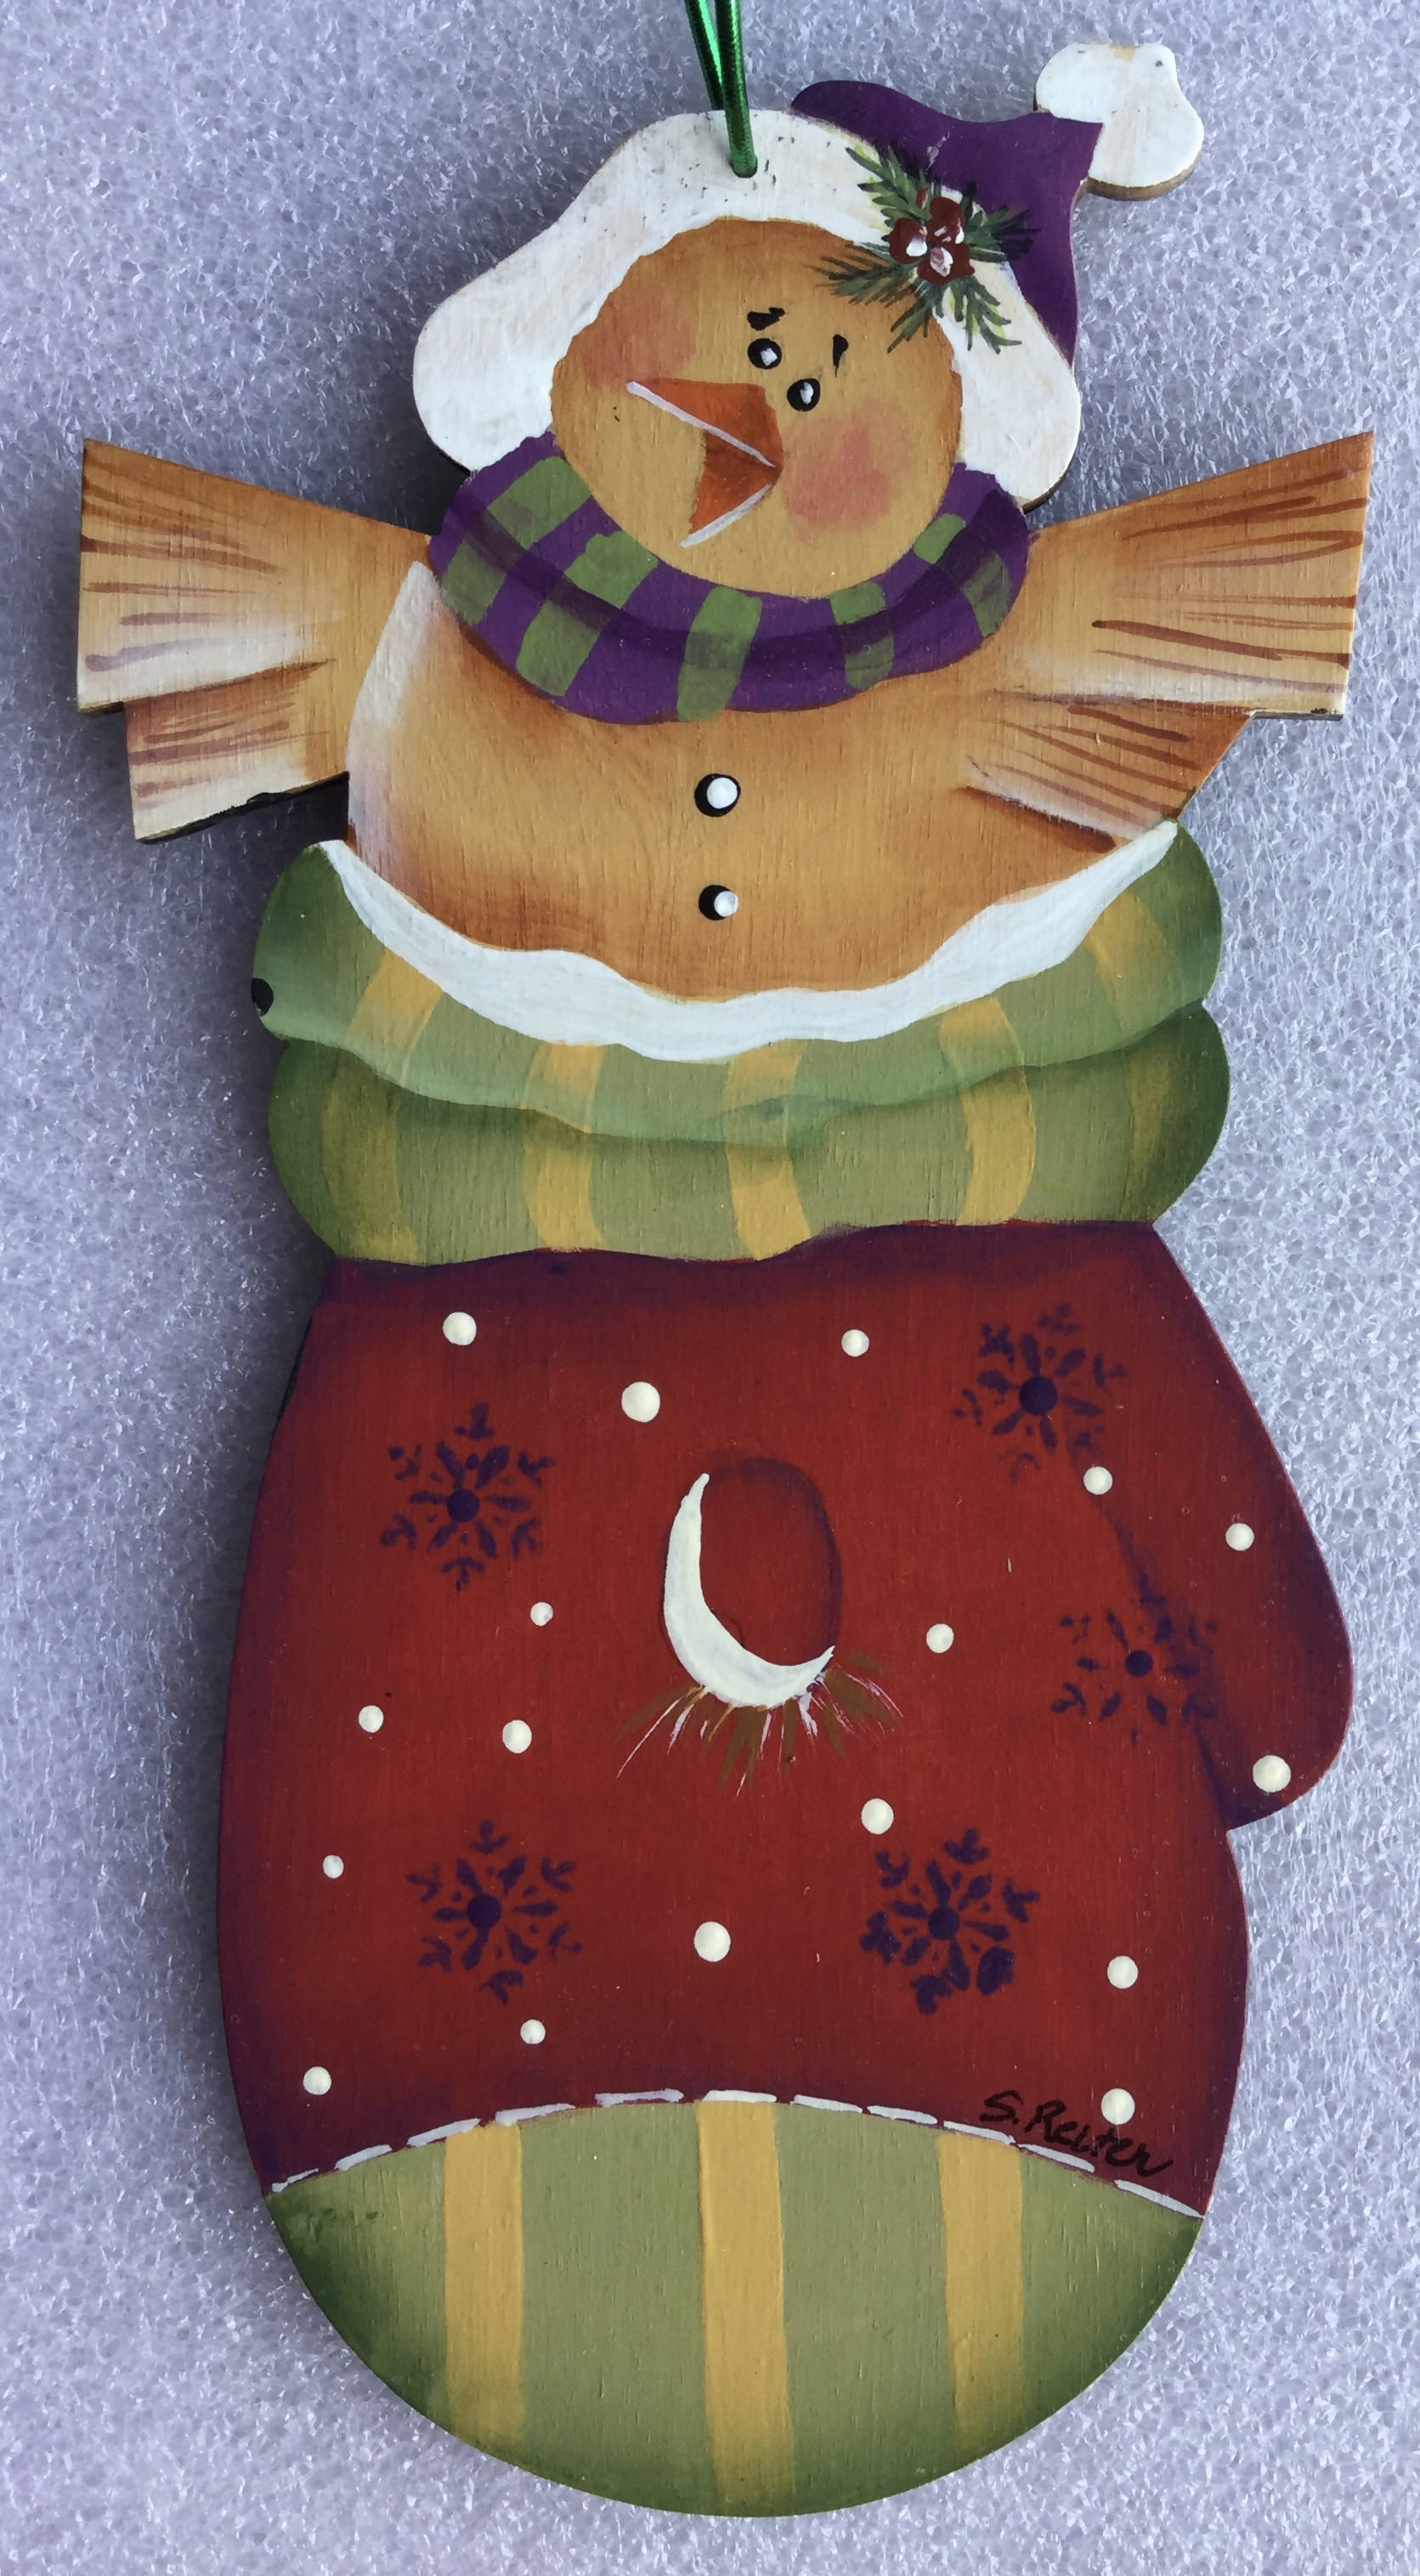 Wooden Cut Out Christmas Ornament Of a Hand Painted Bird in a Mitten